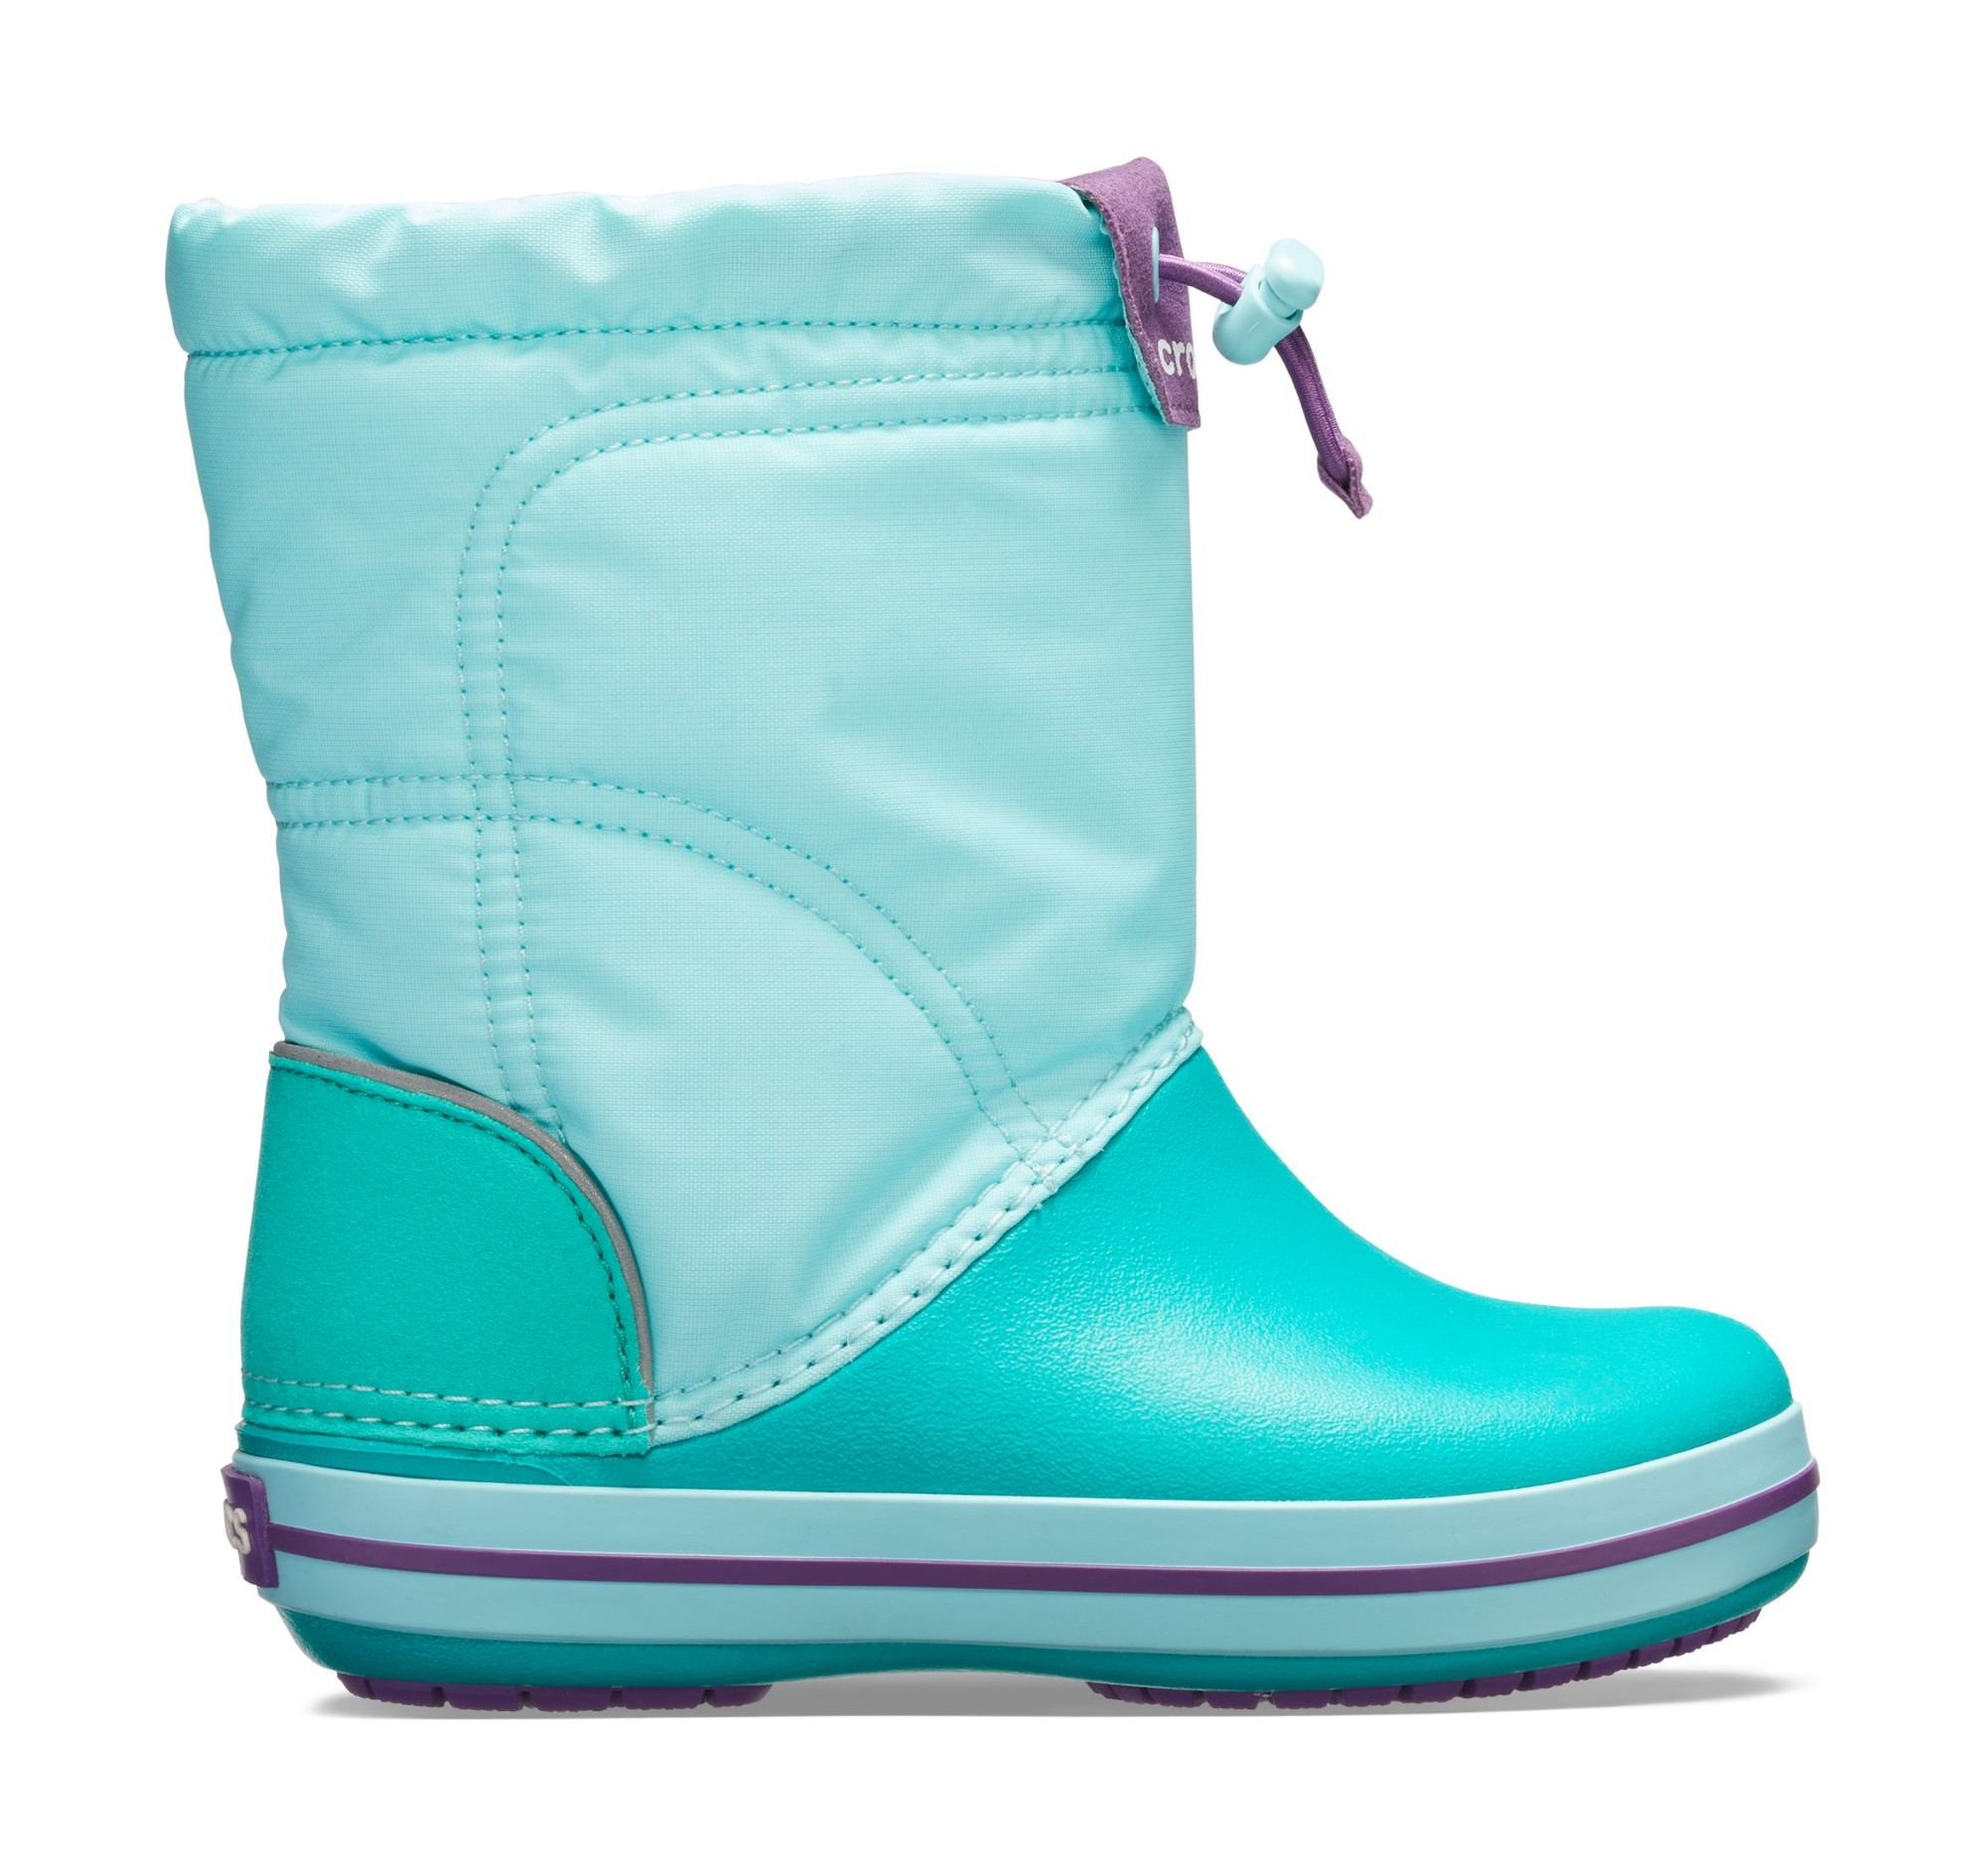 Crocs™ Kids' Crocband Lodgepoint Boot Ice Blue/Tropical Teal 28